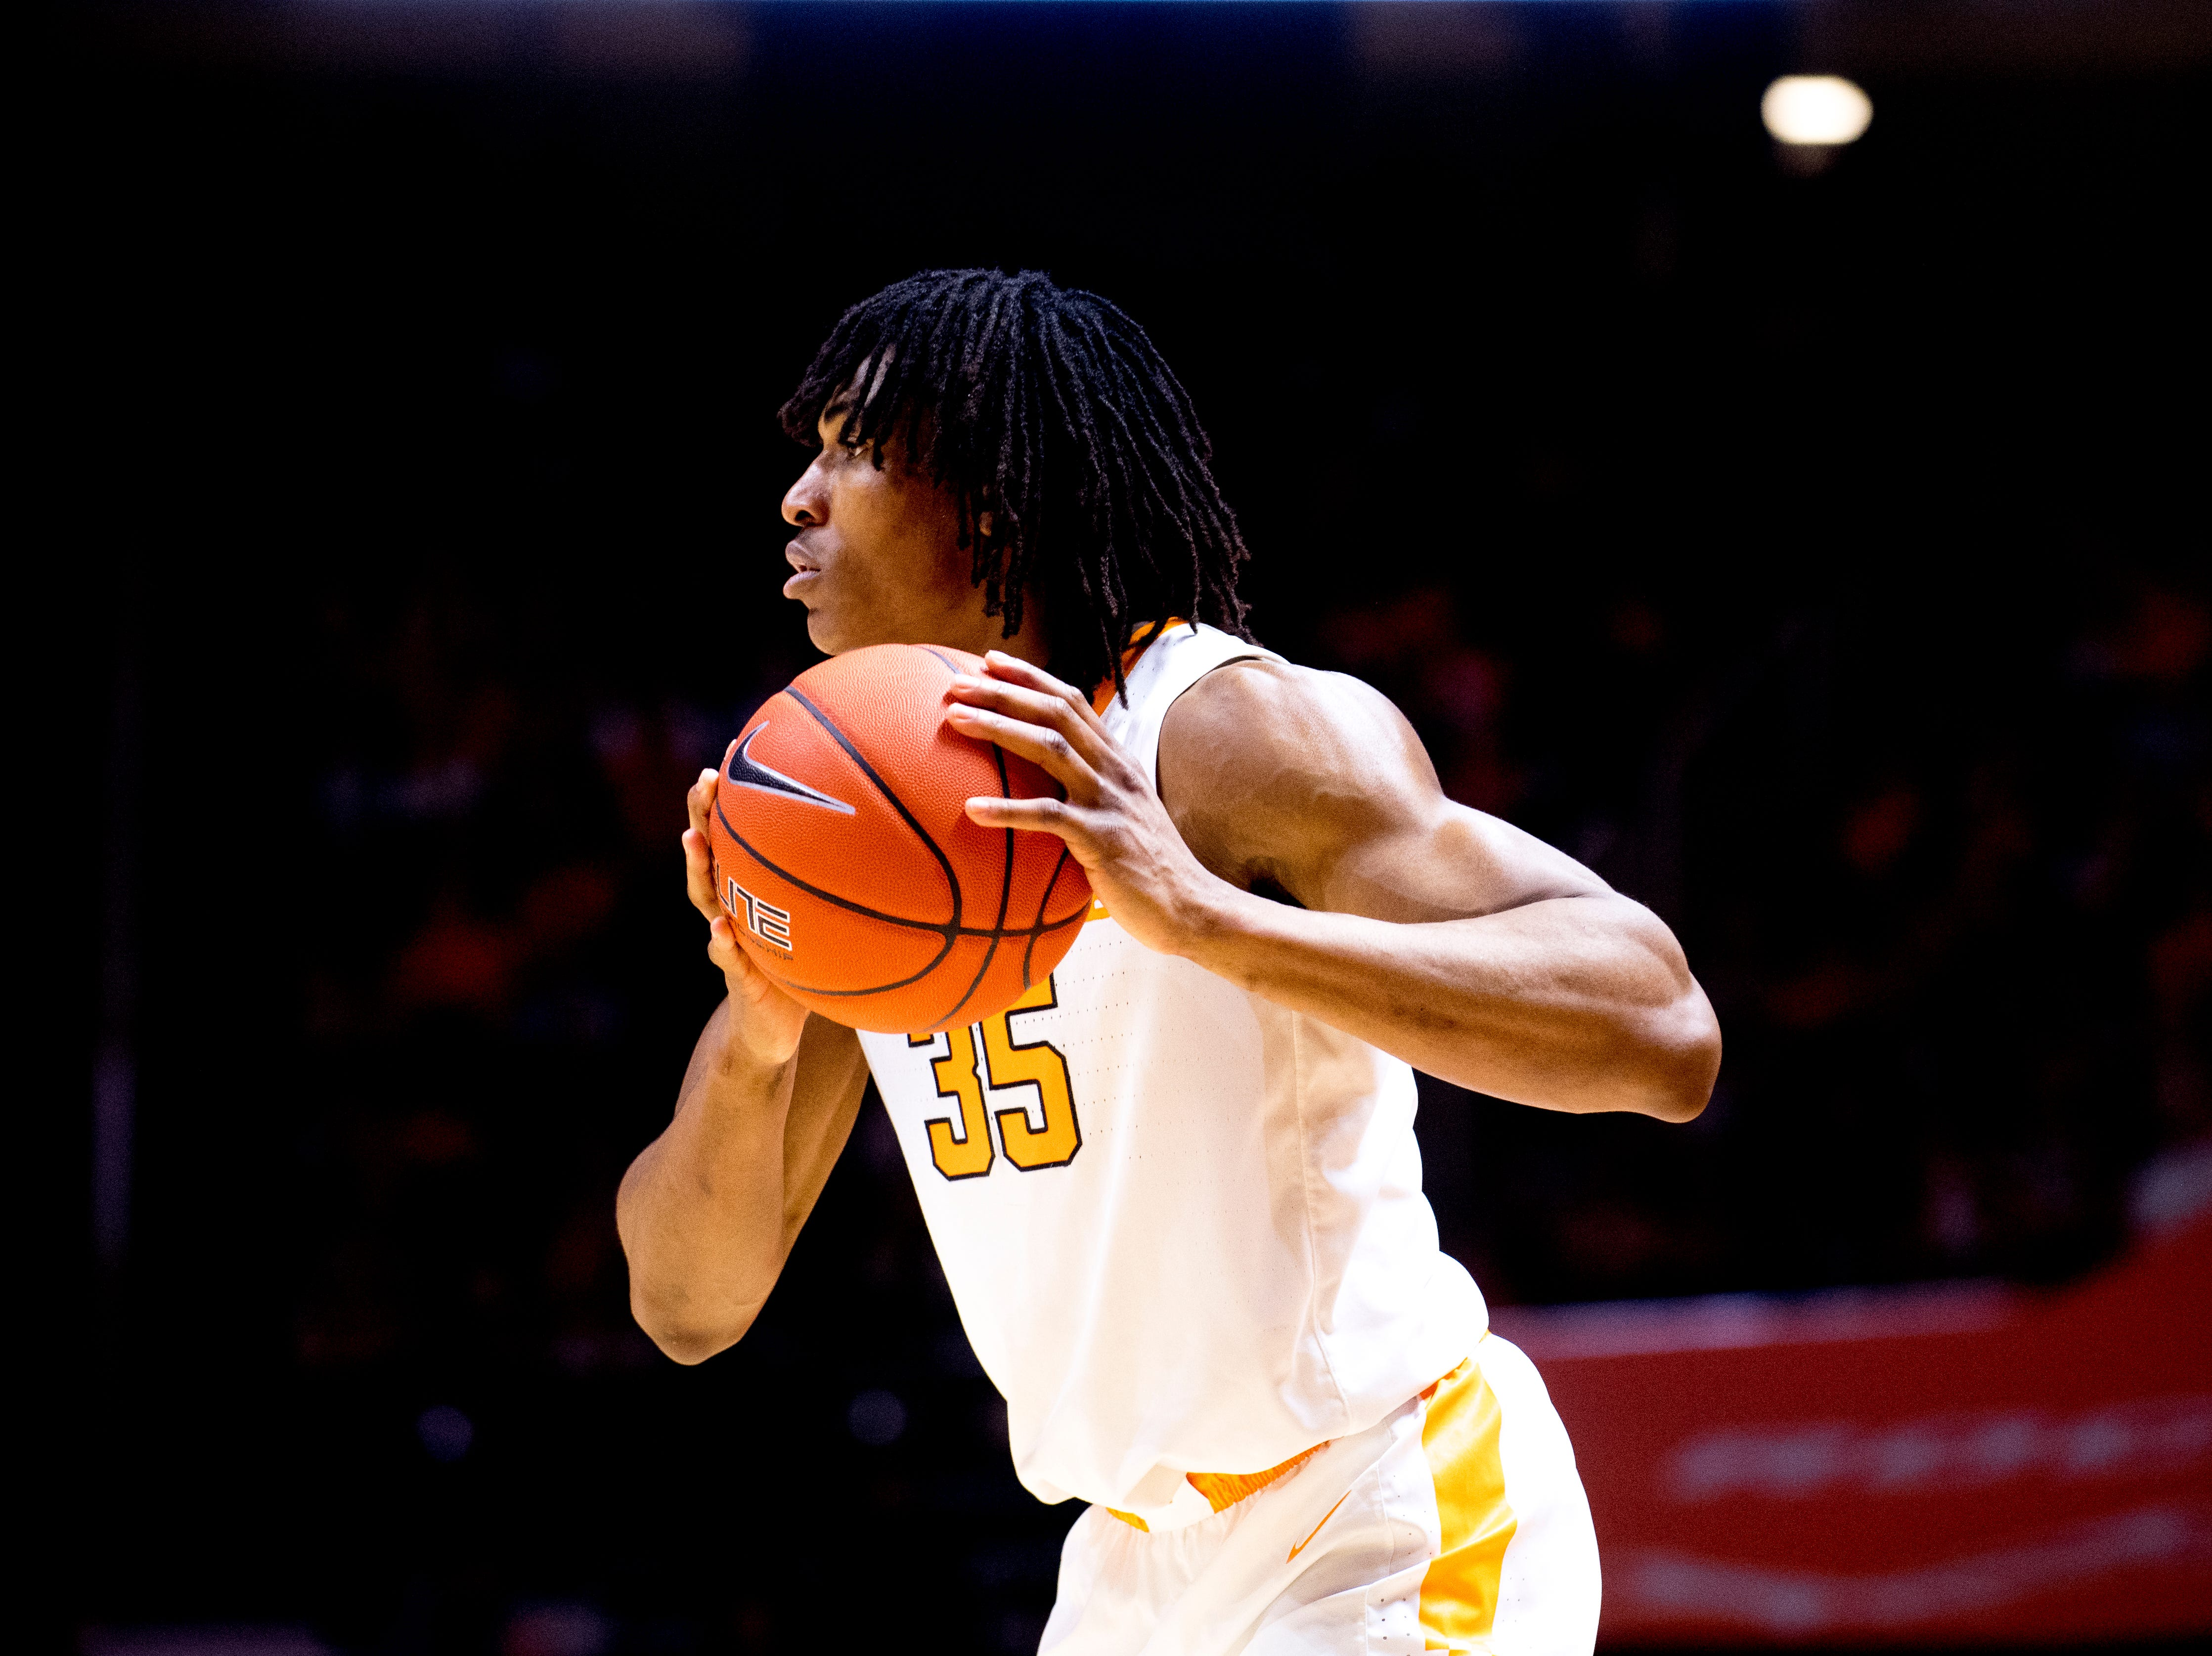 Tennessee guard/forward Yves Pons (35) looks to pass during a game between Tennessee and Samford at Thompson-Boling Arena in Knoxville, Tennessee on Wednesday, December 19, 2018.